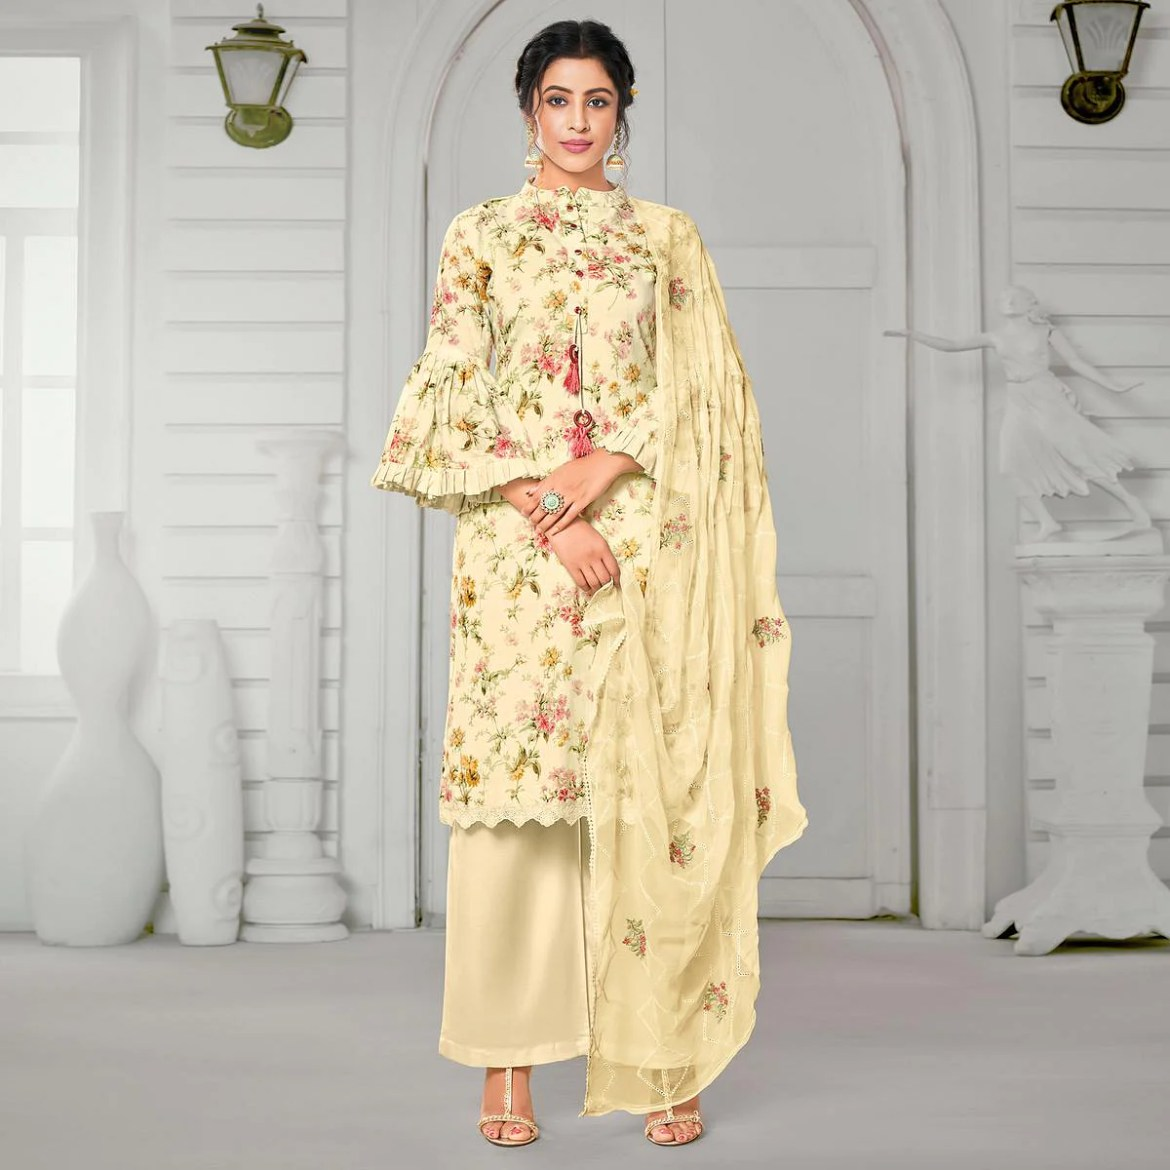 Adorable Beige Colored Casual Wear Digital Printed Pure Jam Cotton Dress Material